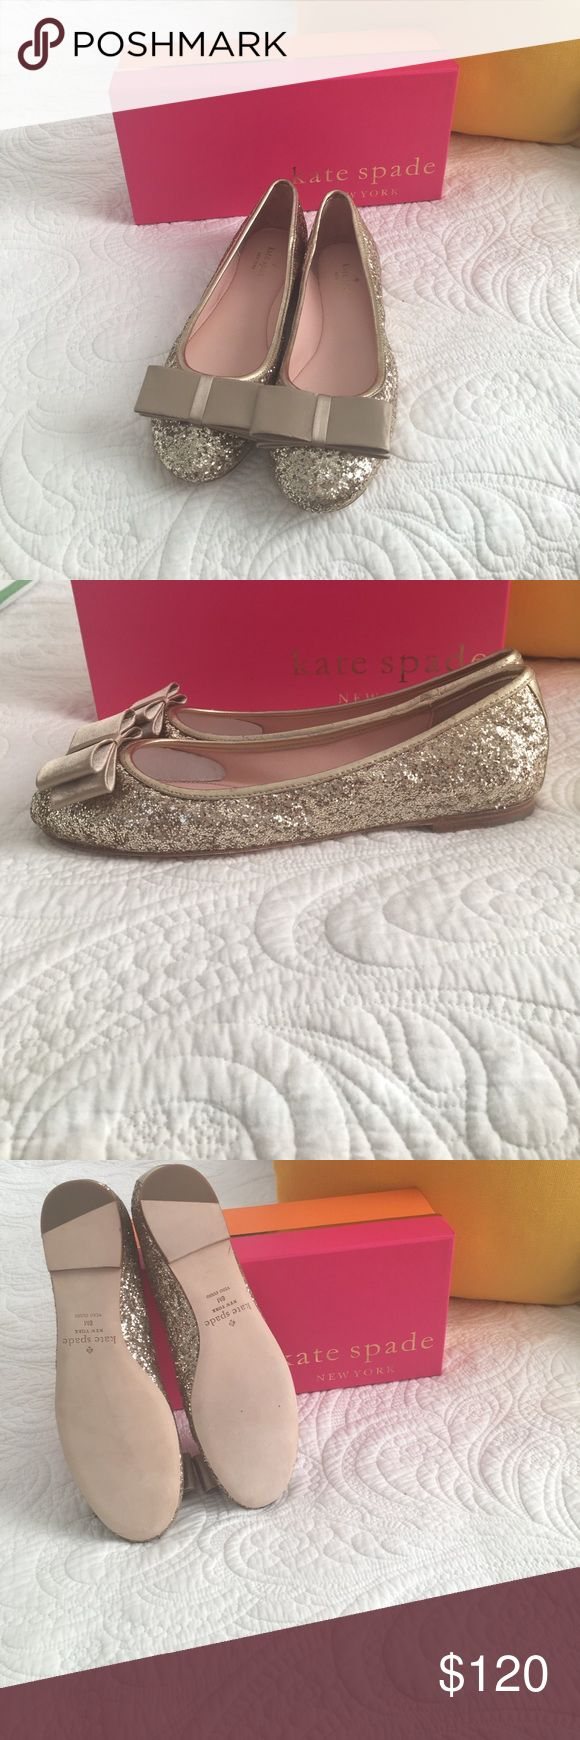 Brand New Kate Spade Size 8 Gold Glitter Satin Bow These shoes are amazing! Truly one of a kind Size 8 Kate Spade Flats. Gold Glitter with Gold Satin Bow. Brand New out of the Box. Make me a reasonable offer or Bundle for 15% savings. Add these to your shoe closet, they will go quick!🎀♠️ kate spade Shoes